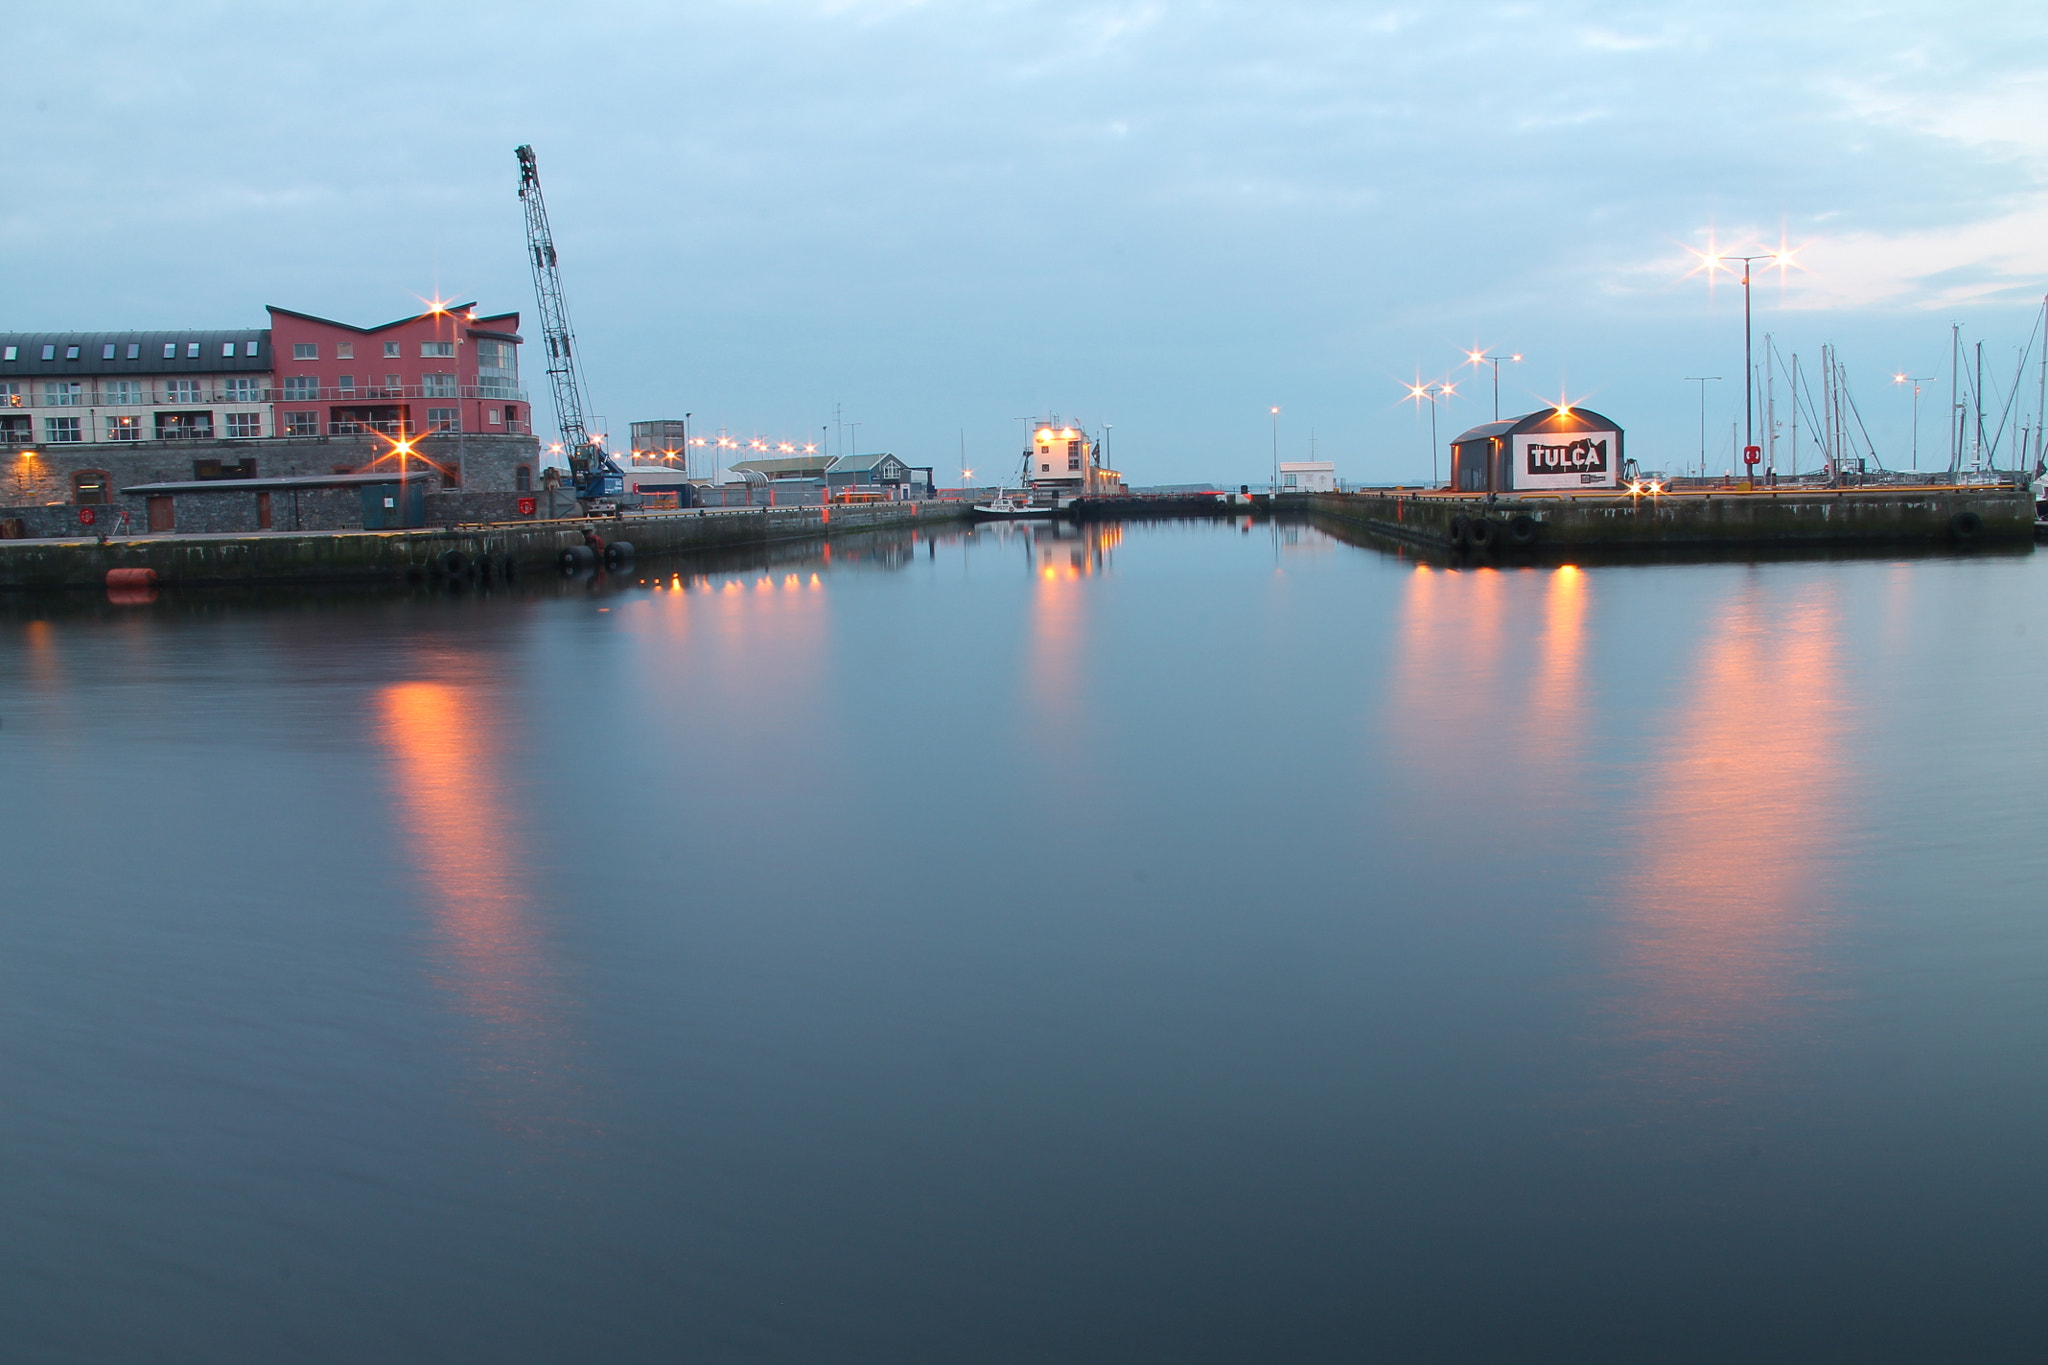 Photograph Galway Dock by Damian Smith on 500px